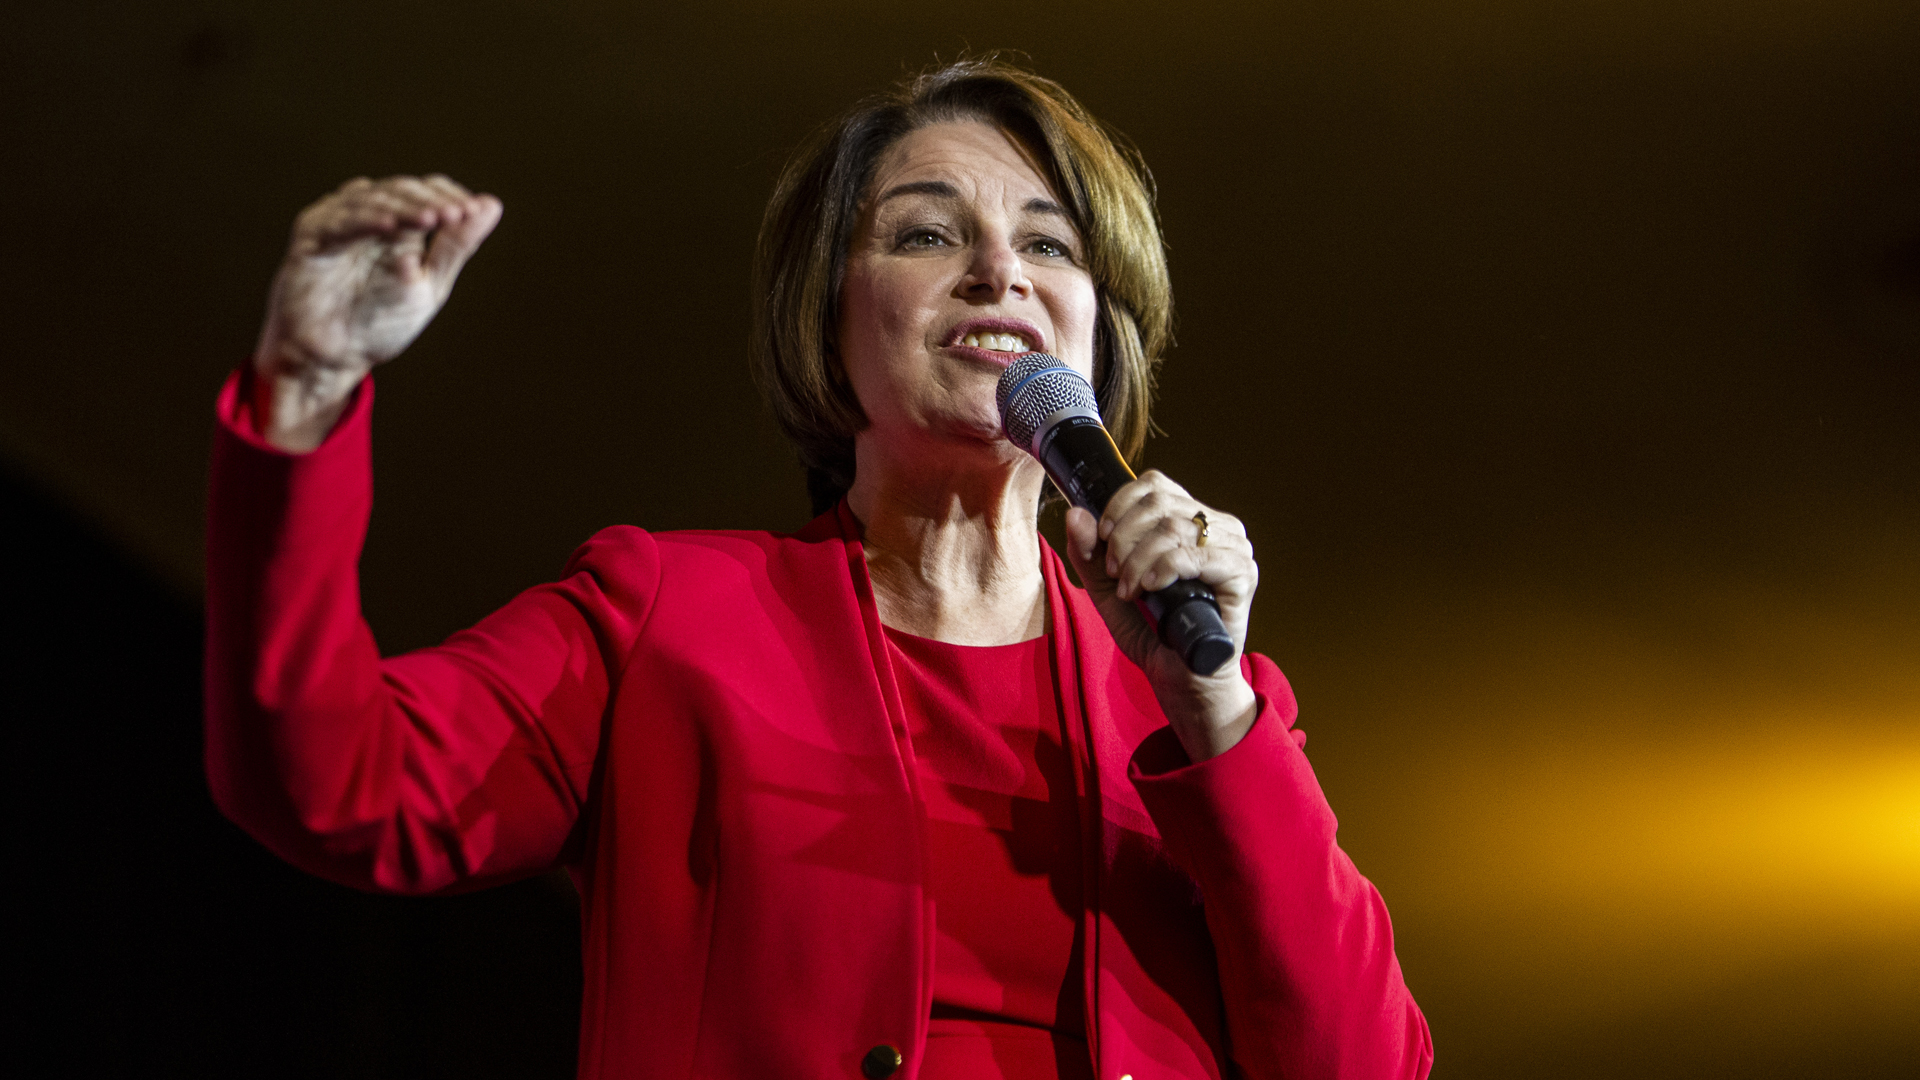 Democratic Presidential Candidate Sen. Amy Klobuchar (D-MN) speaks during a campaign rally at the Altria Theatre on February 29, 2020 in Richmond, Virginia. (Zach Gibson/Getty Images)